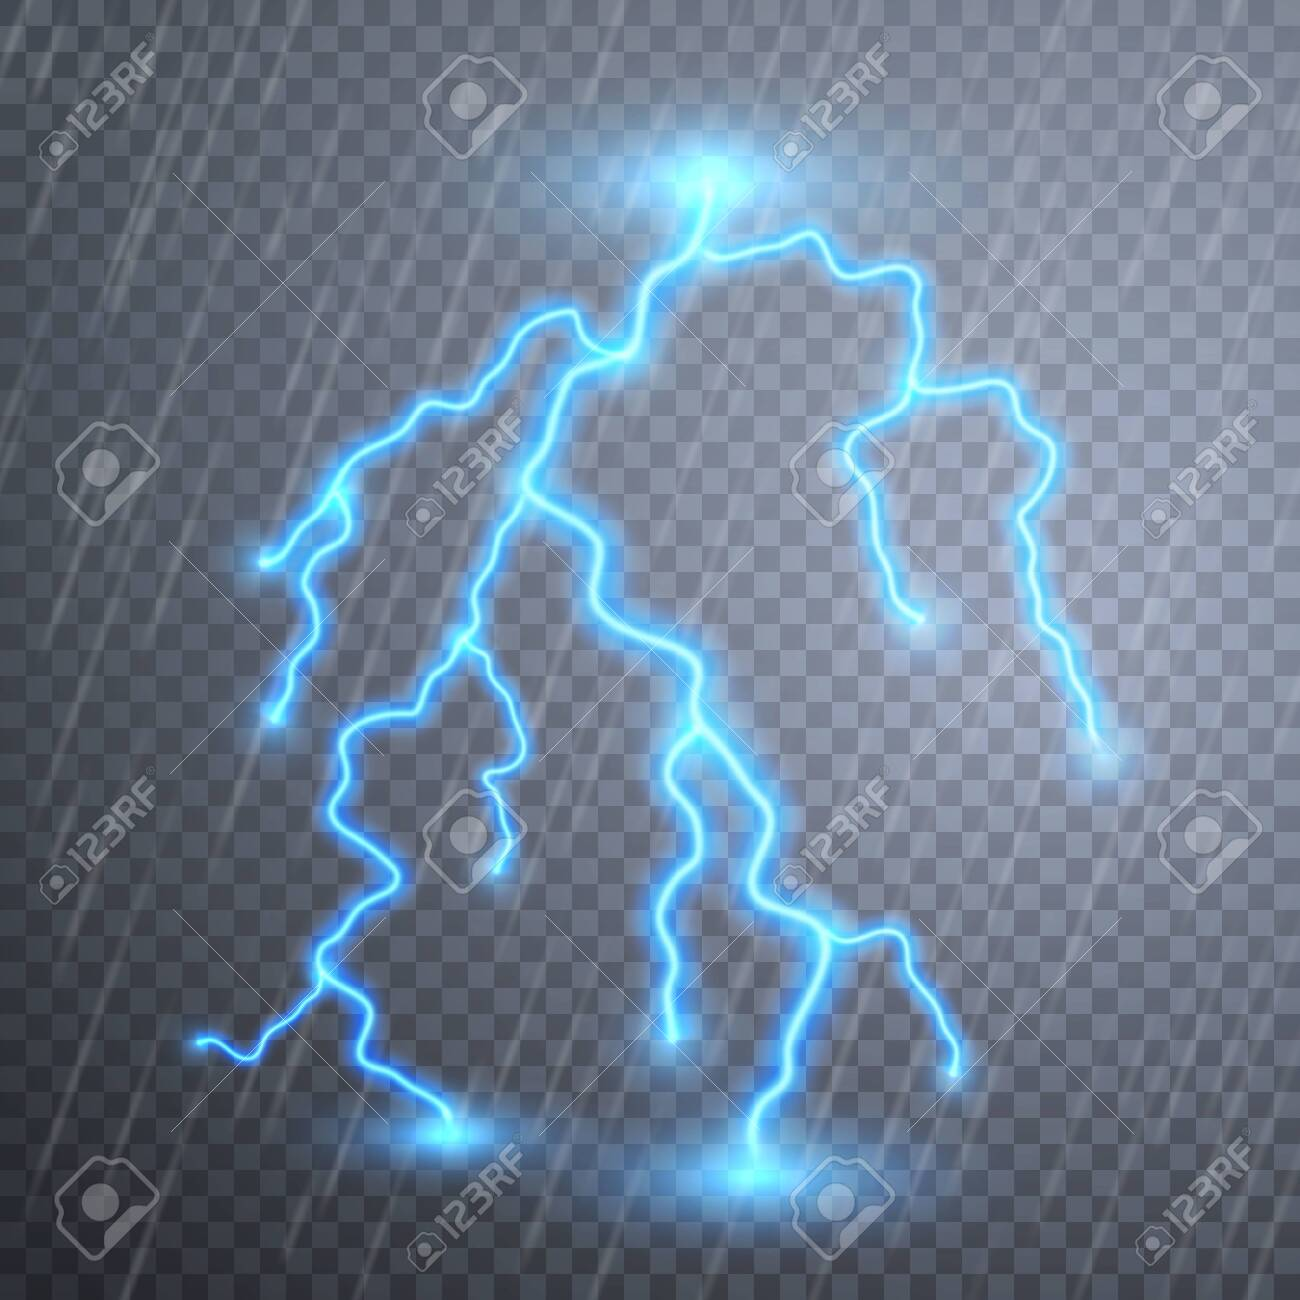 Realistic lightnings with transparency for design. Thunder-storm and lightnings. Magic and bright lighting effects. Vector illustration. - 123630498